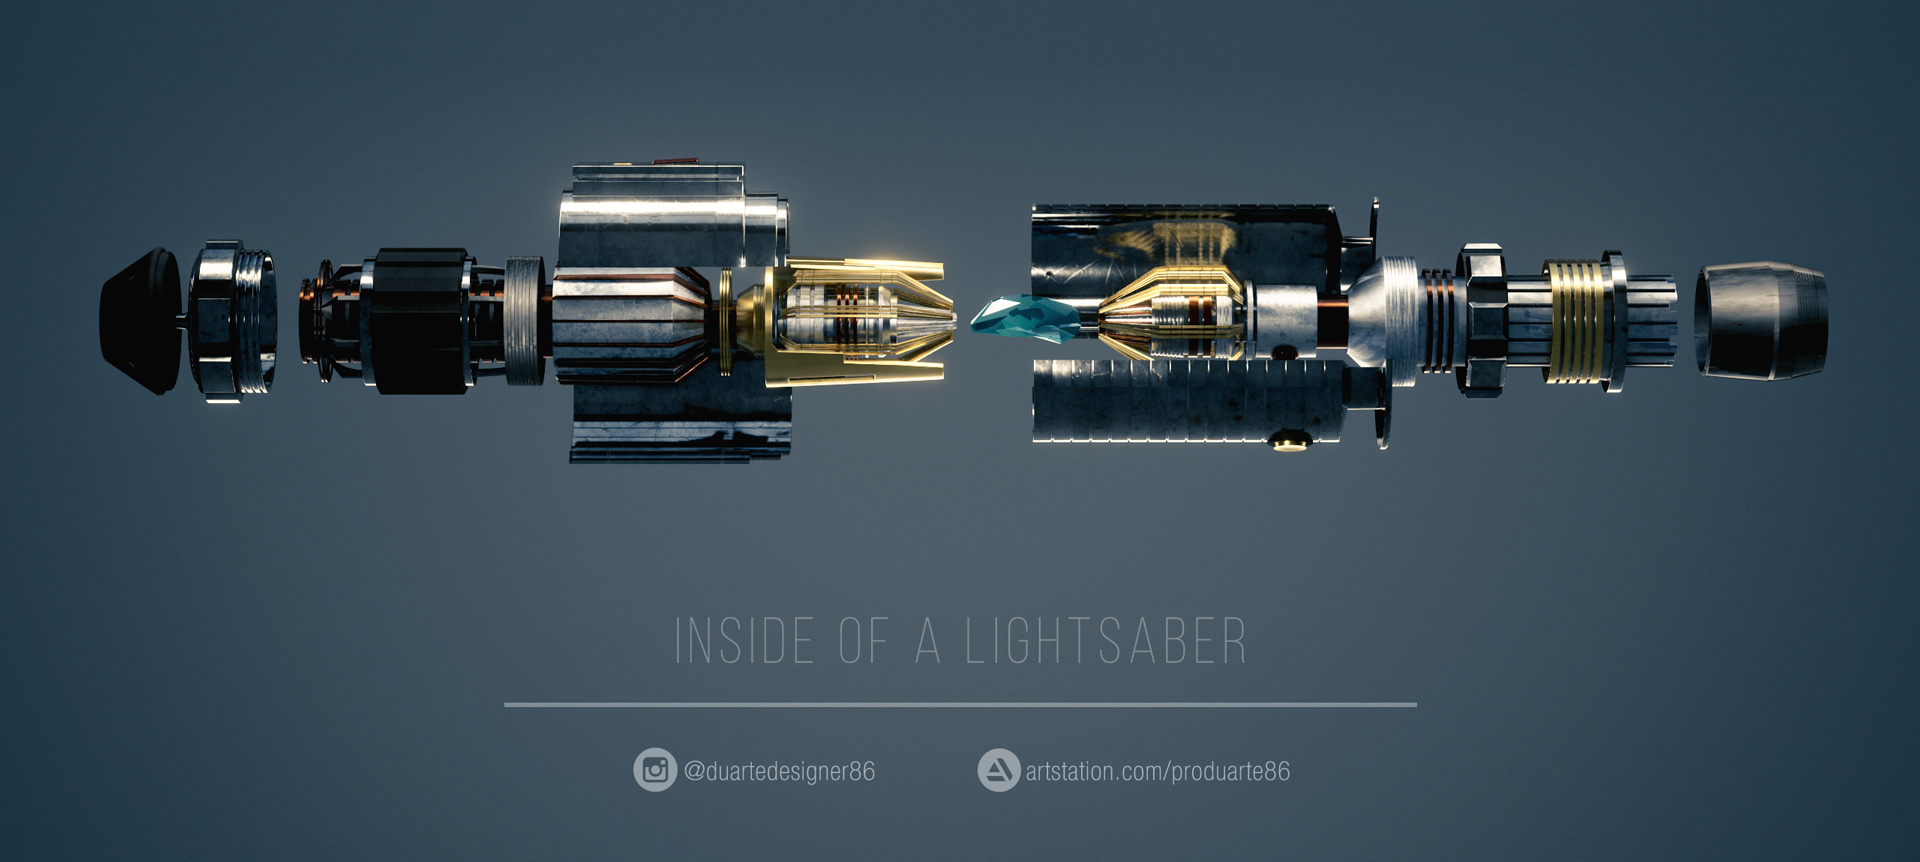 24+ Unique Lightsaber Concept Art Images